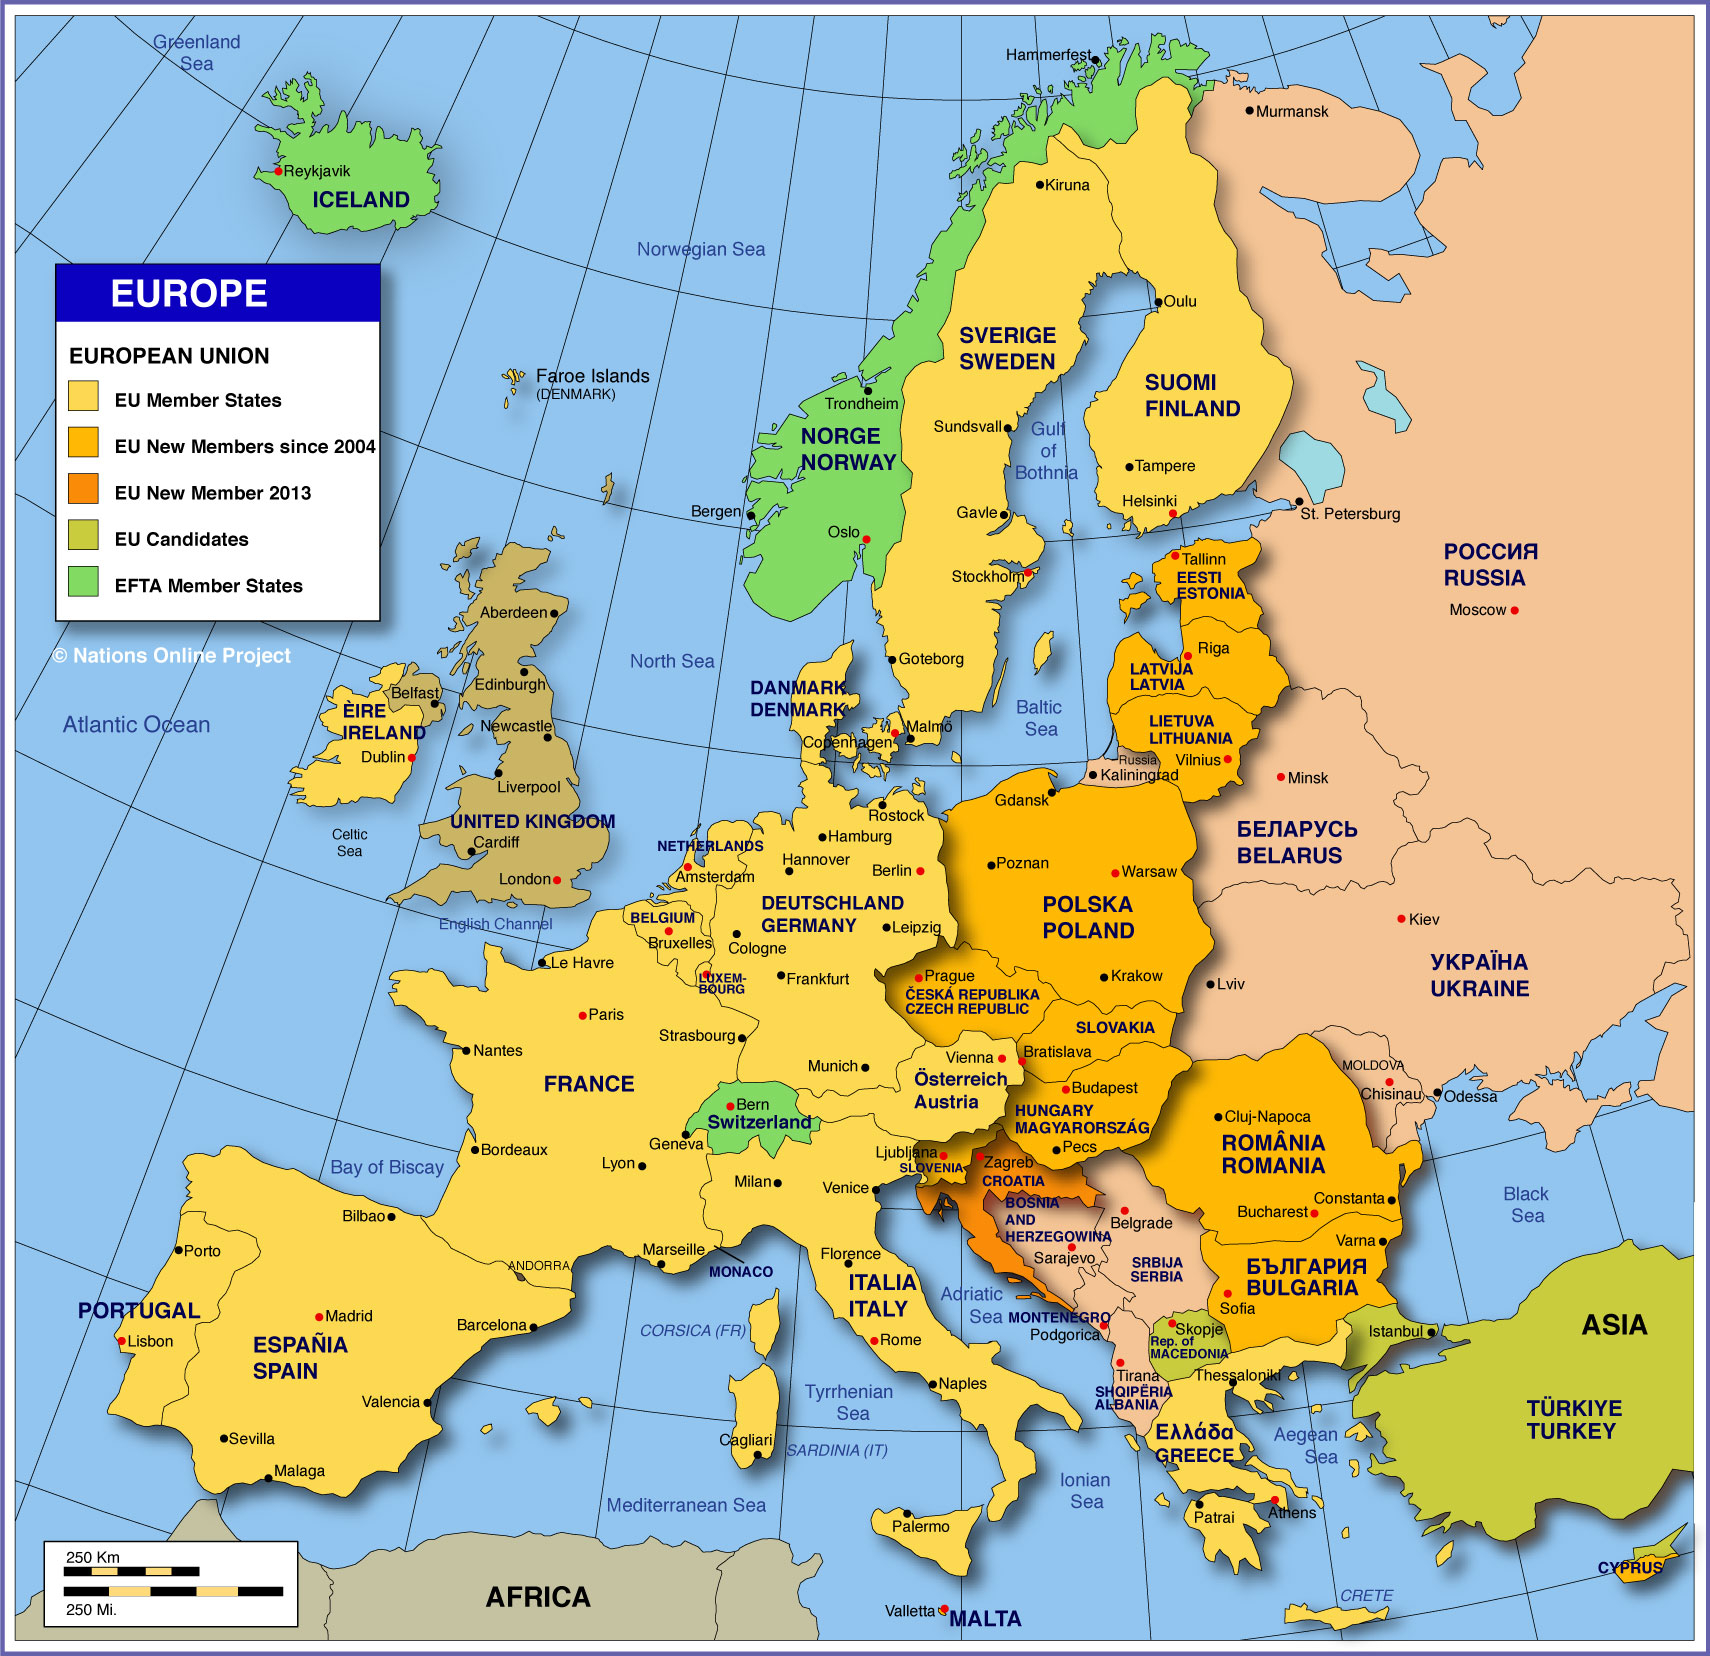 show map of europe with all countries Map Of Europe Member States Of The Eu Nations Online Project